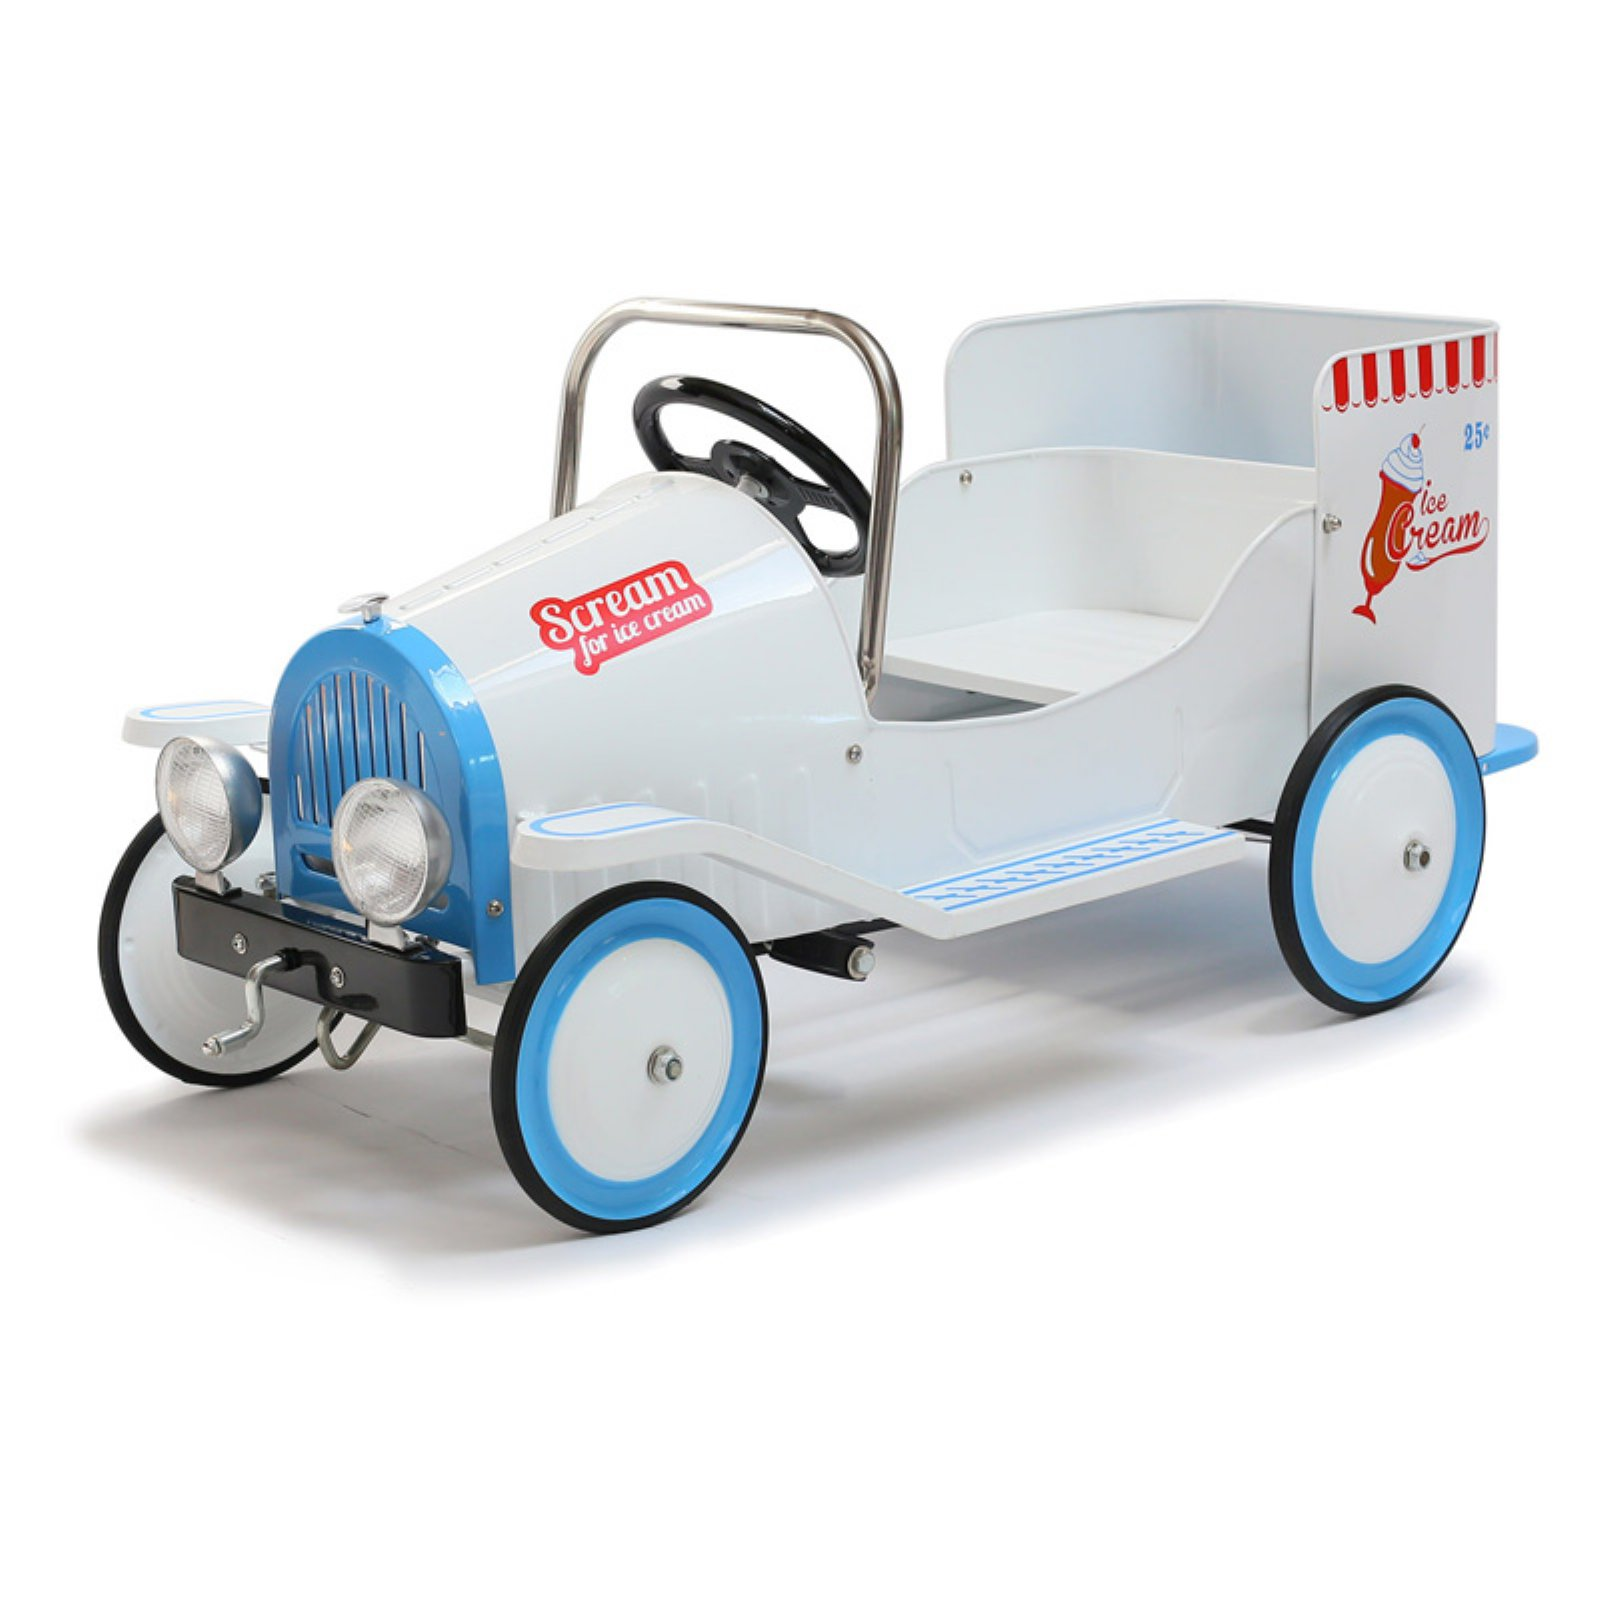 Morgan Cycle Ice Cream Truck Pedal Riding Toy